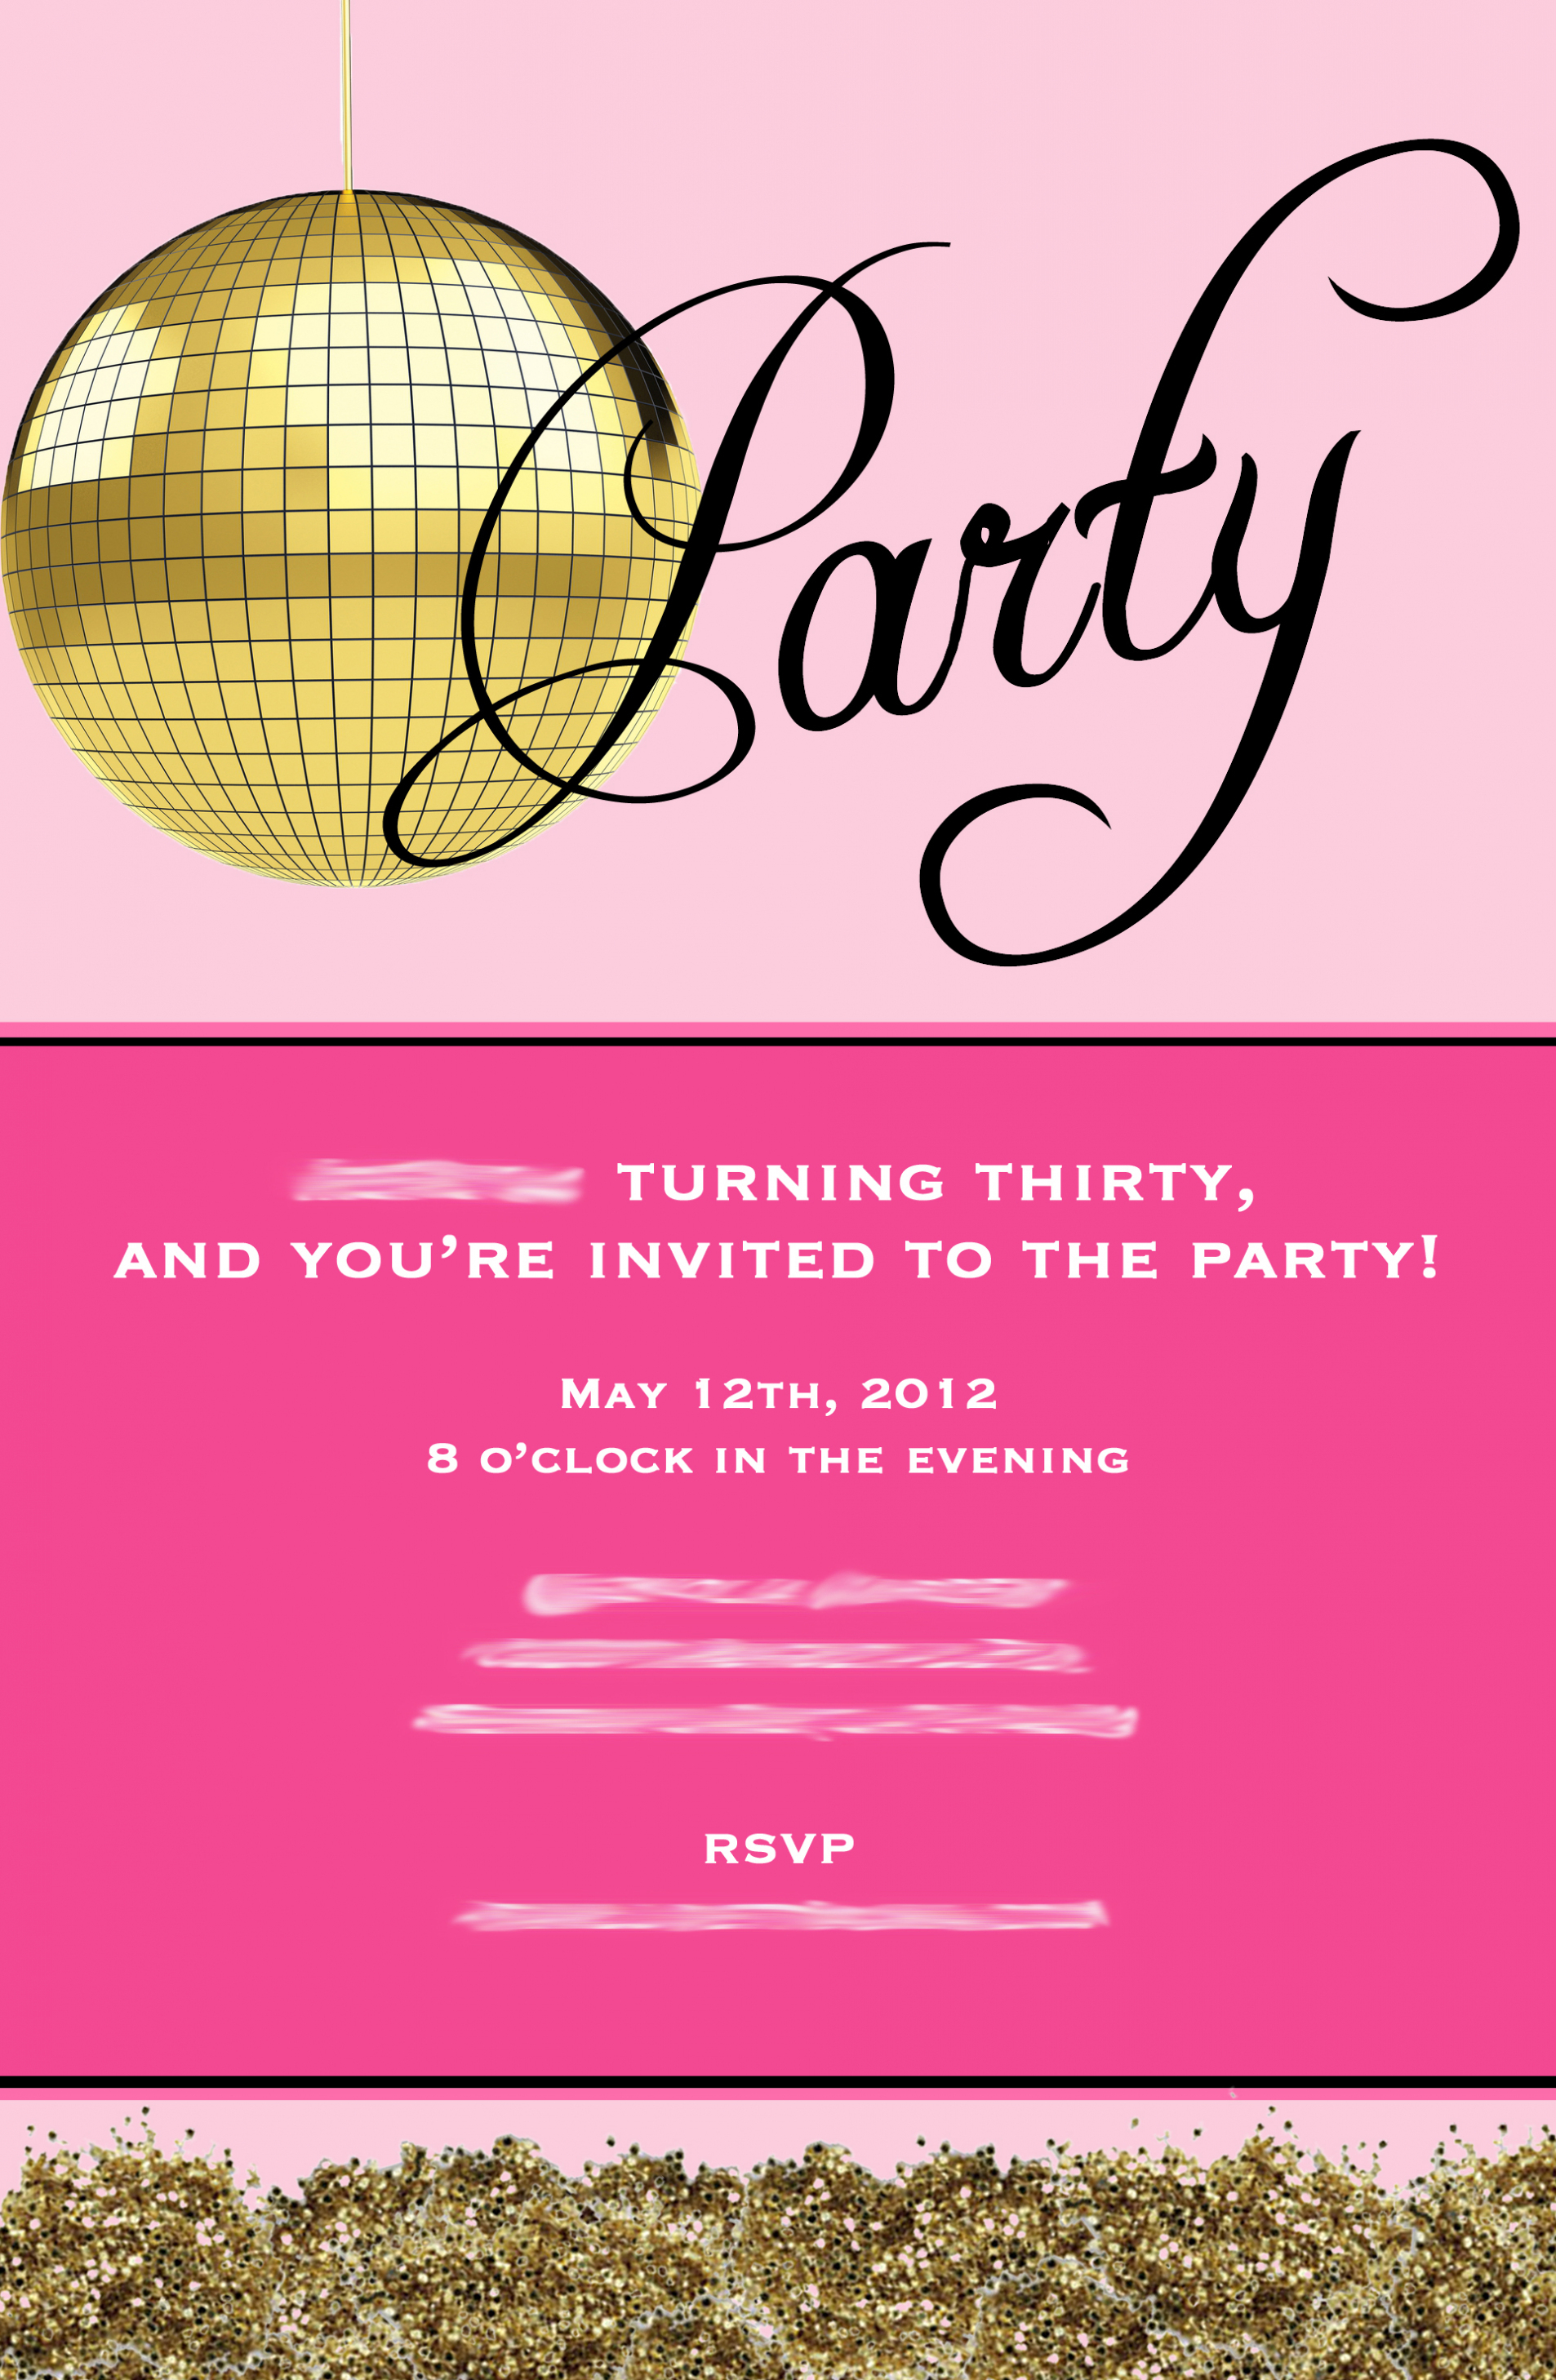 funny birthday party invitation quotes ; 30th-birthday-party-invitation-wording-alanarasbach-funny-birthday-invitation-quotes